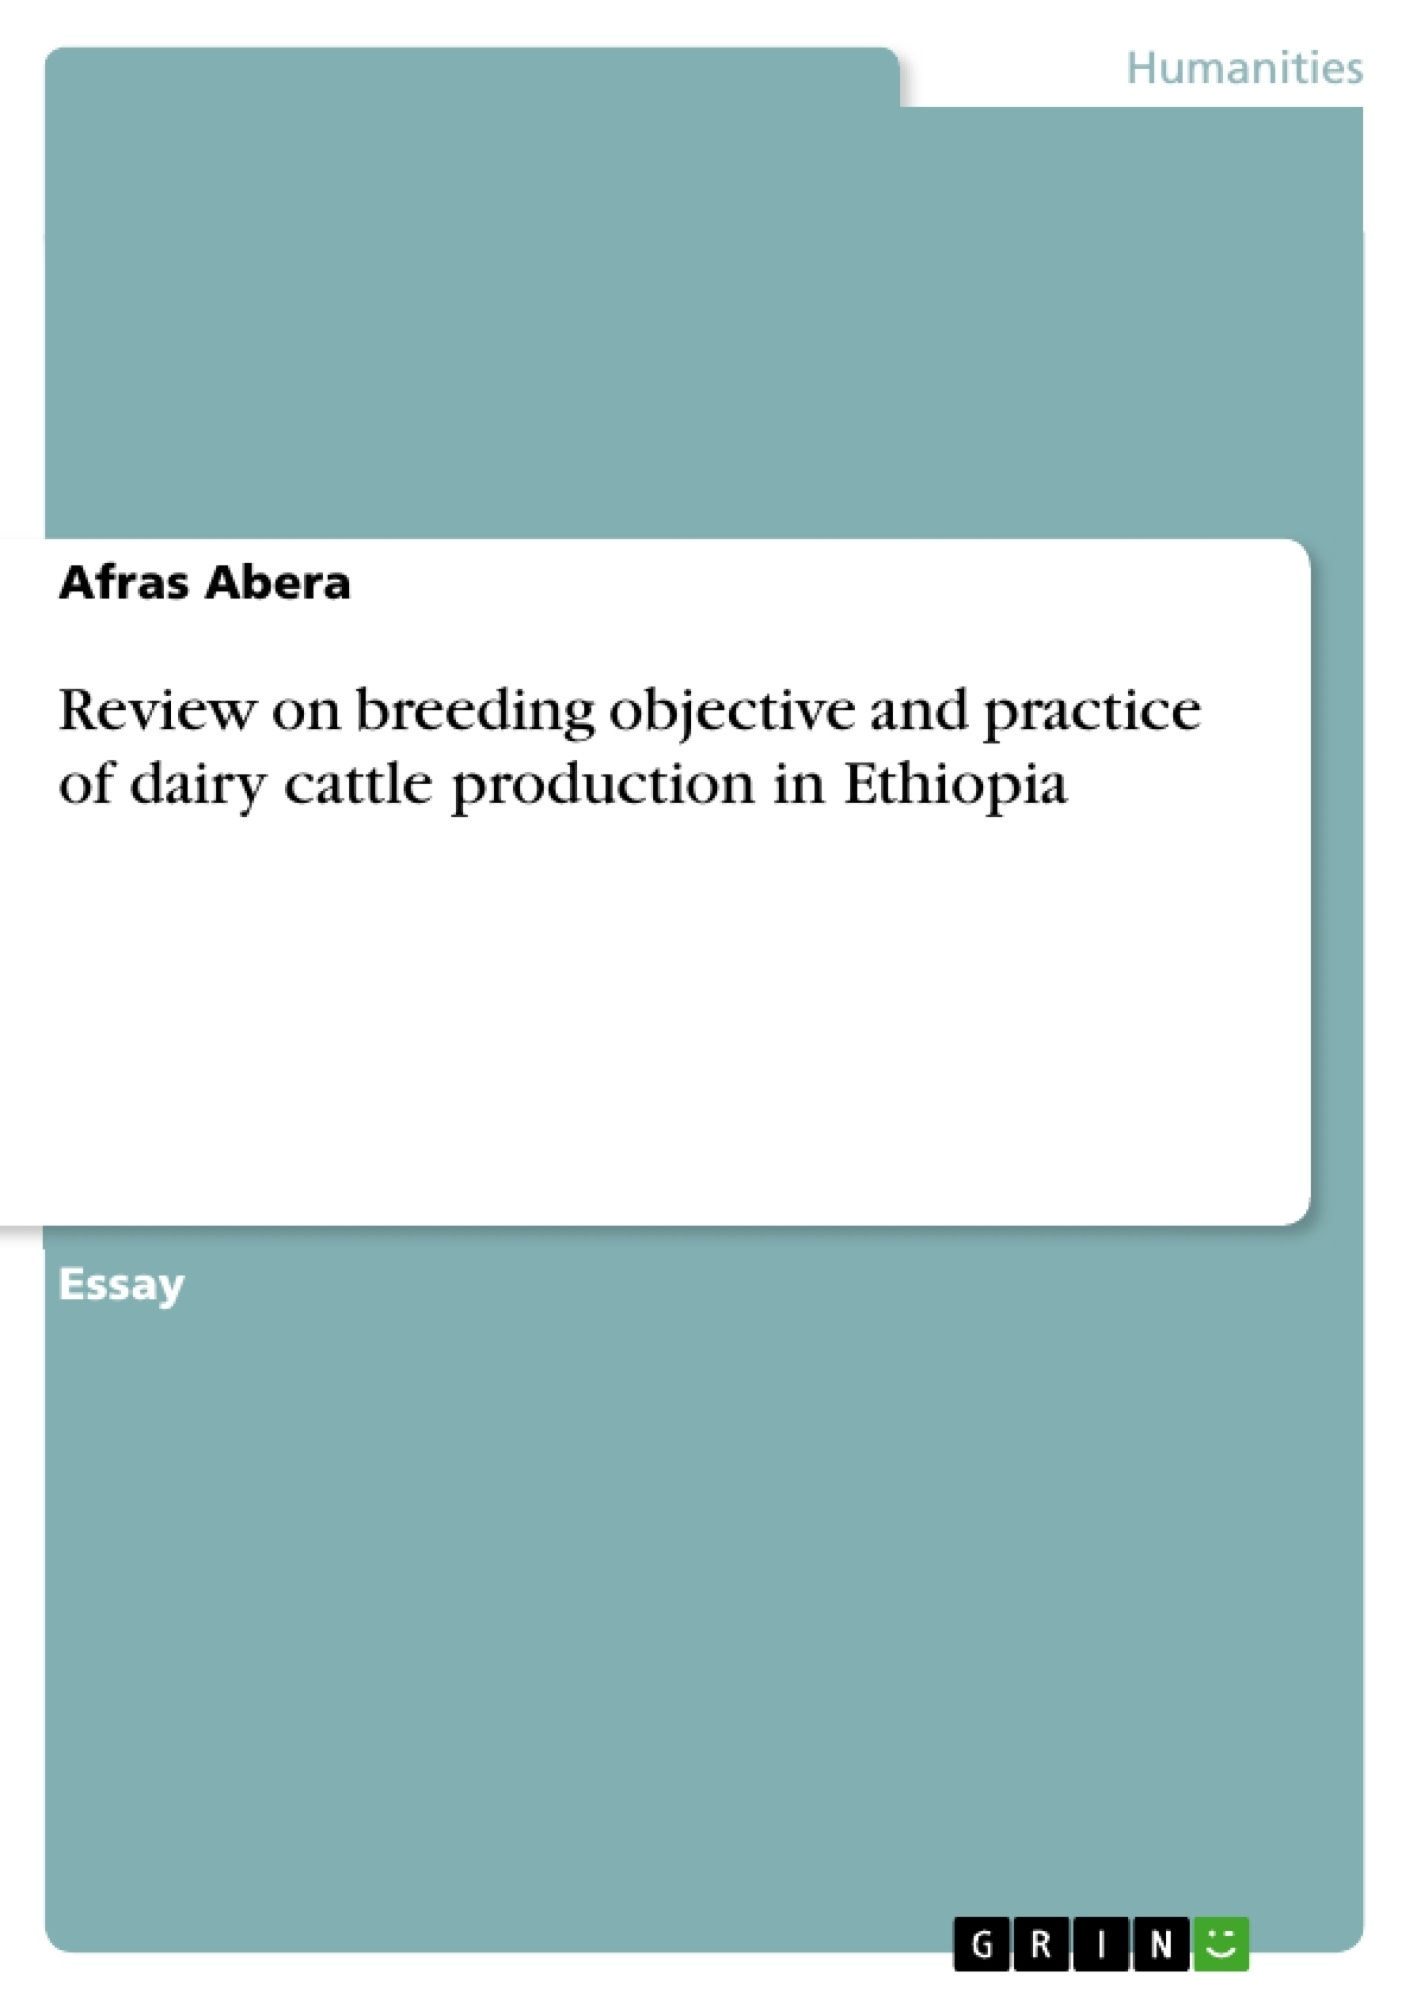 GRIN - Review on breeding objective and practice of dairy cattle production  in Ethiopia